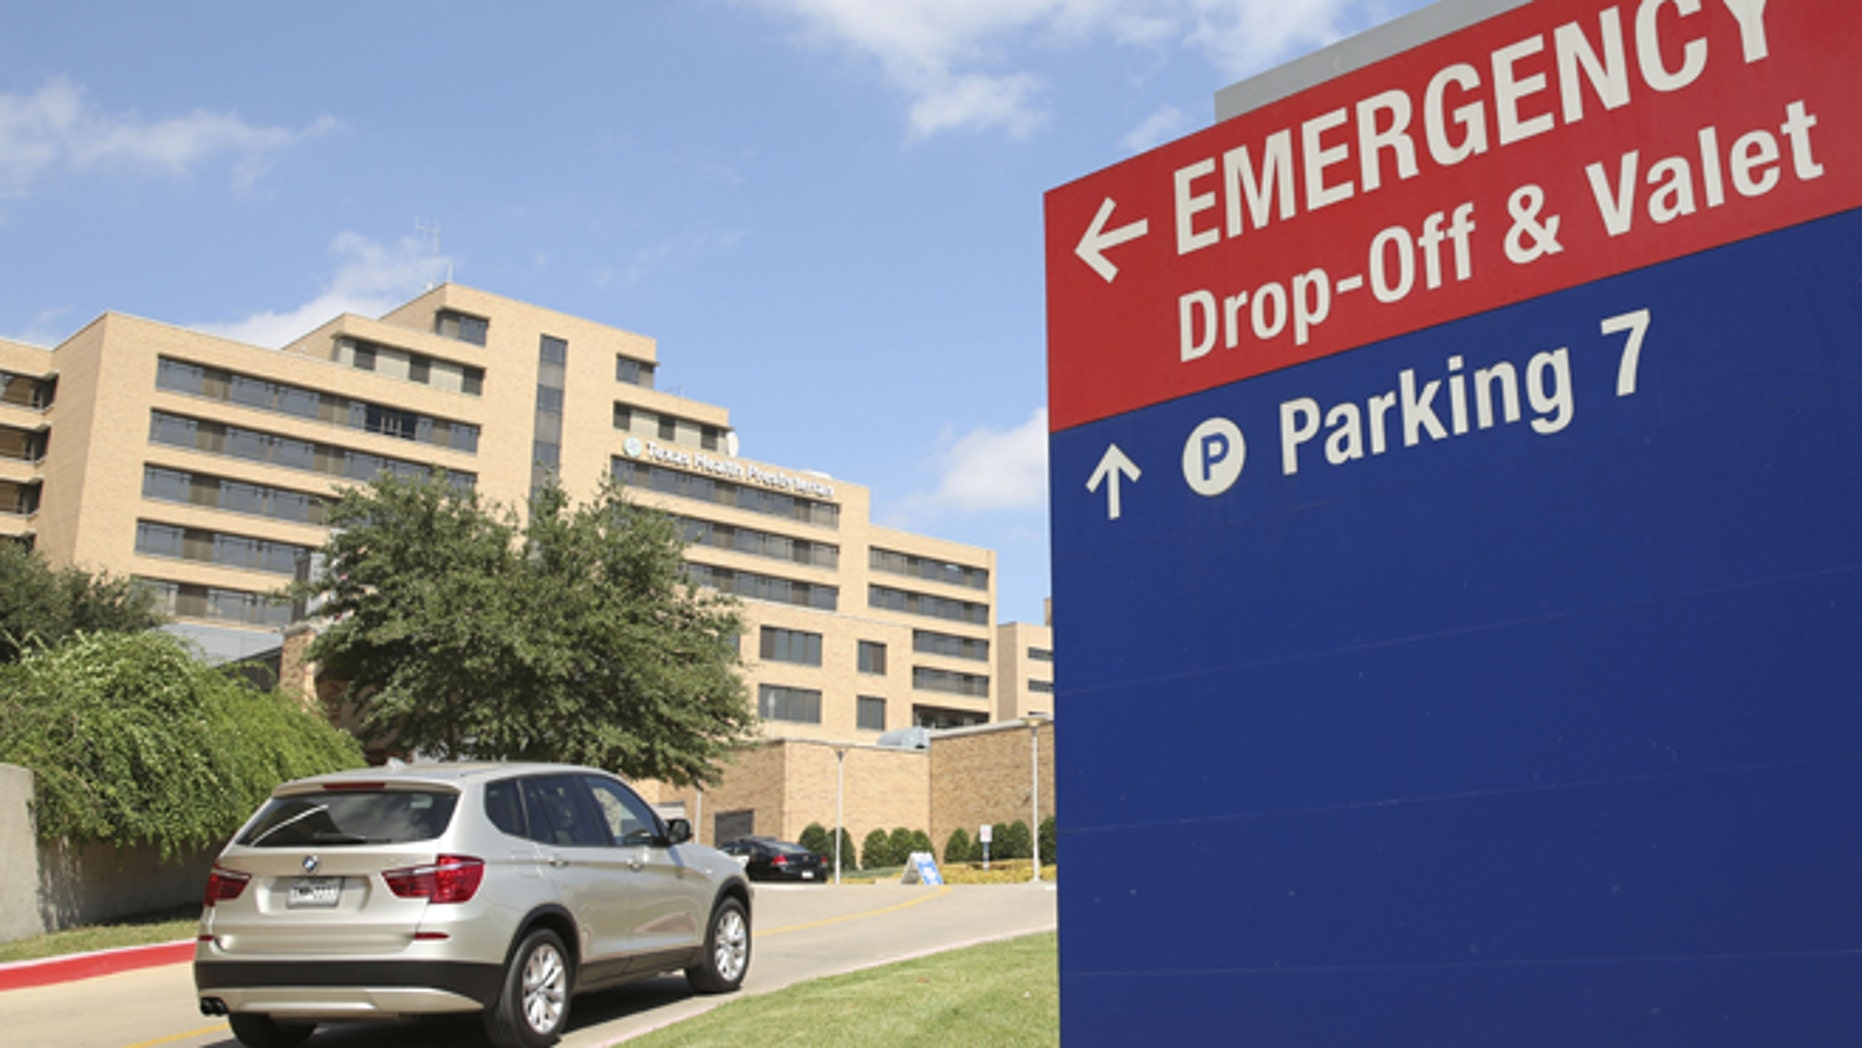 Sept. 30, 2014: A vehicle drives up the driveway to the Texas Health Presbyterian Hospital in Dallas. A patient in the hospital is being teated for Ebola.